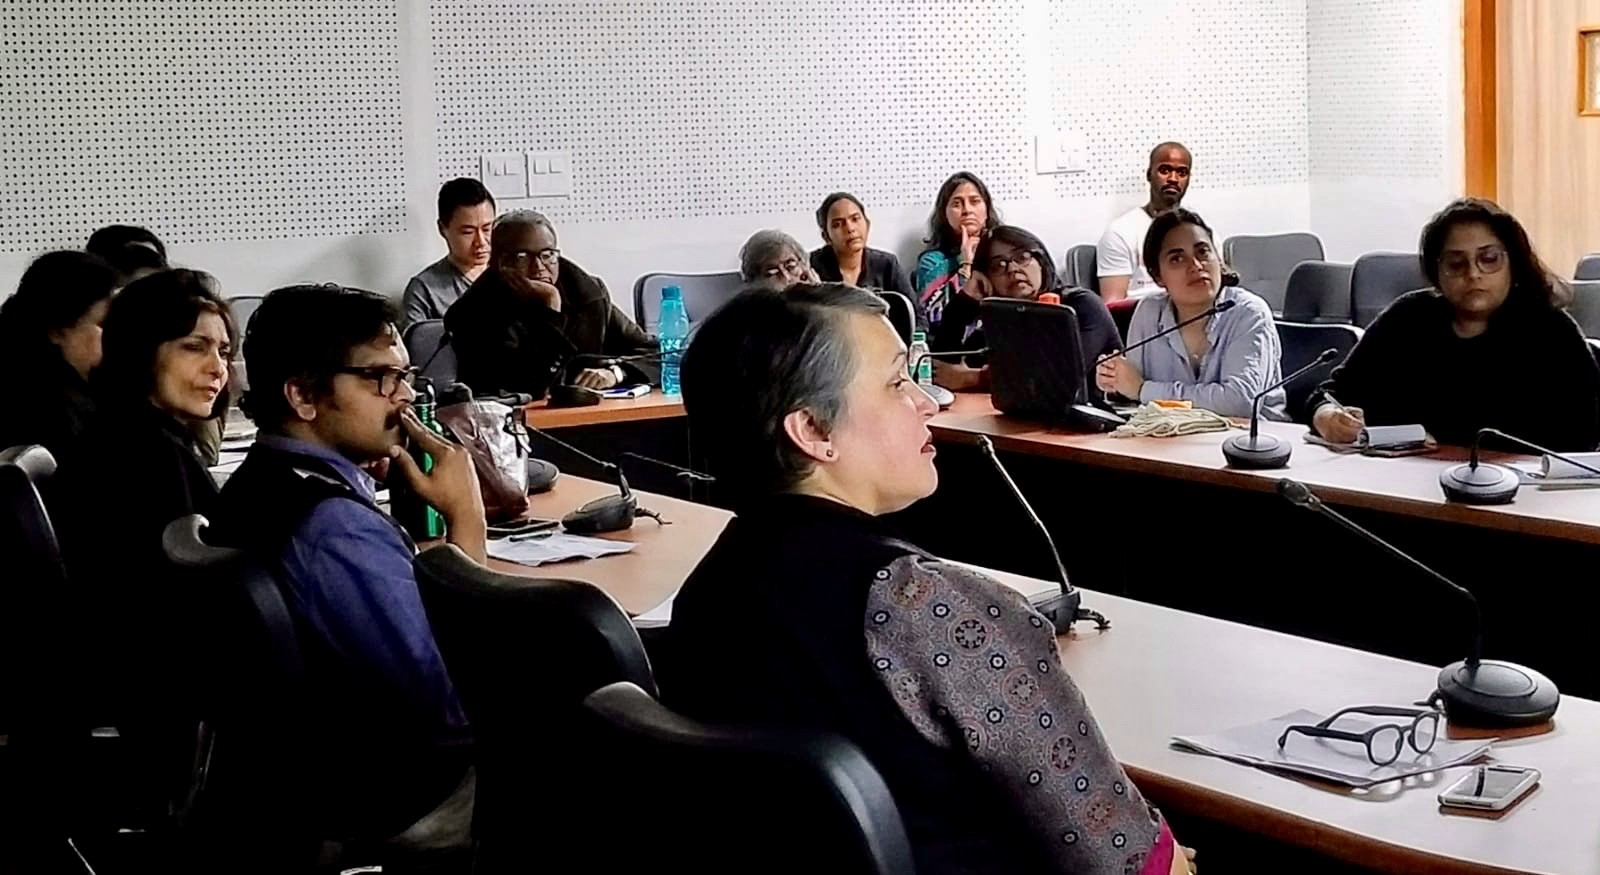 Participants in the roundtable at Jawaharlal Nehru University (Photo: AMin Lalani, 2019).